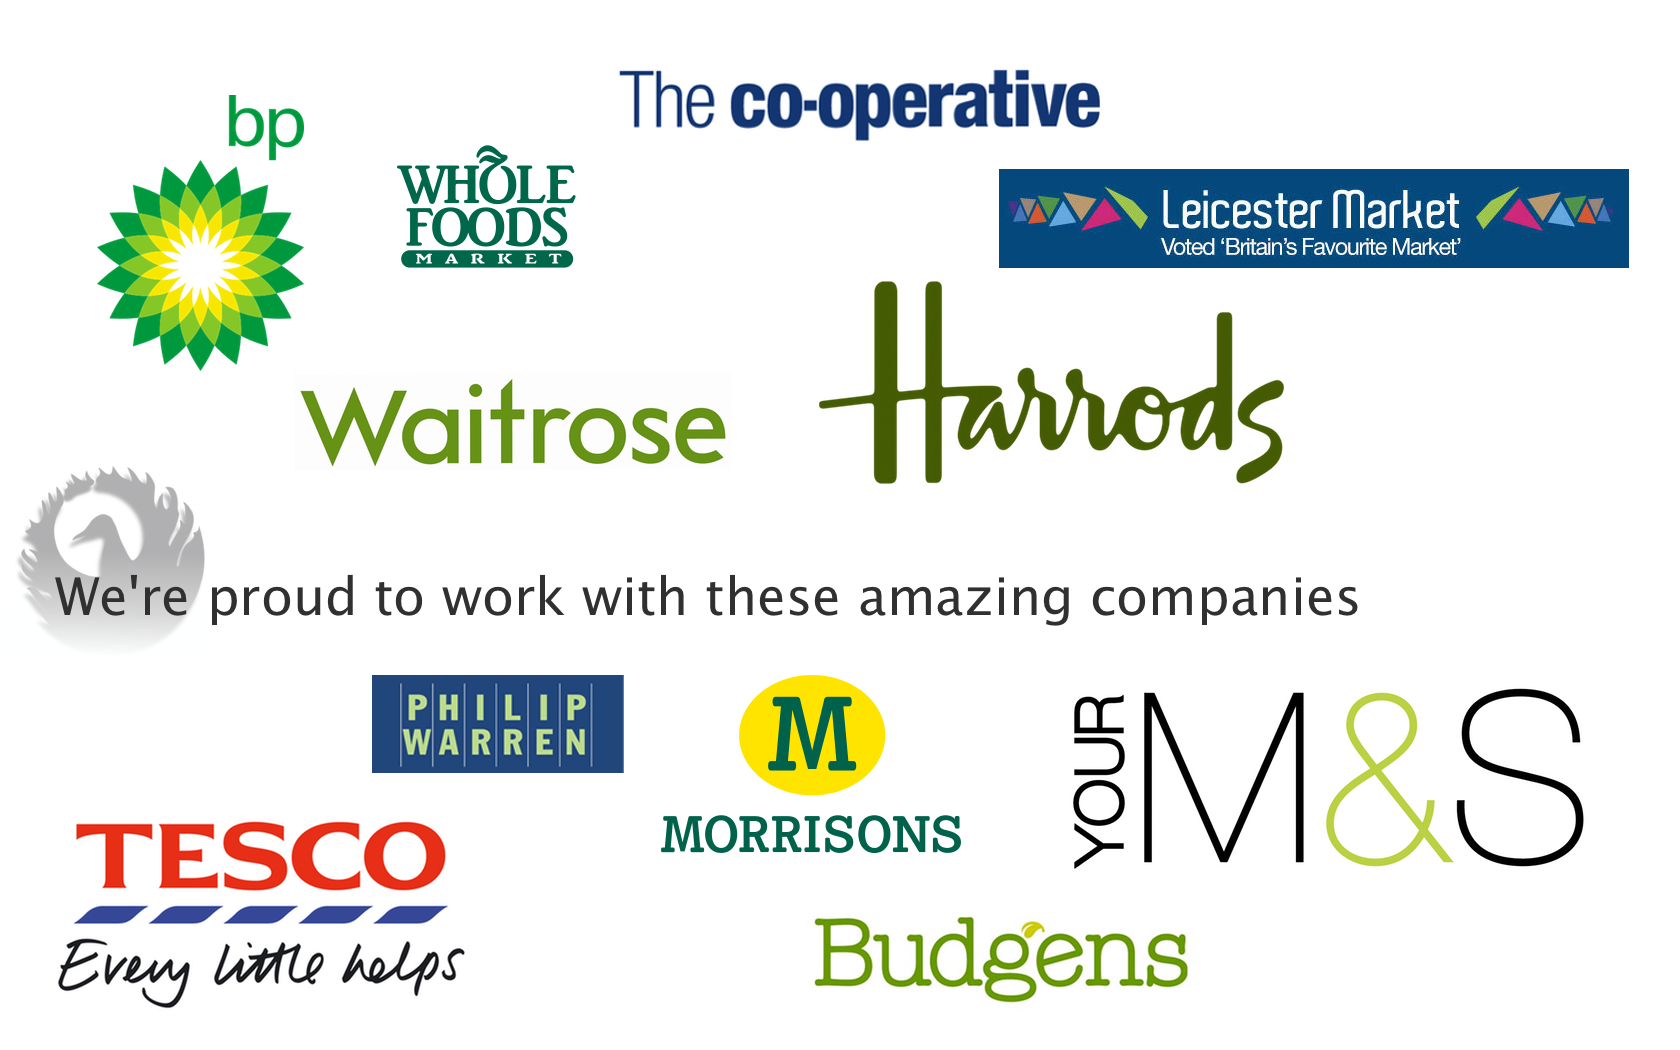 A graphic showing the logos of our customers including The Co-operative, Waitrose, Whole Foods, Harrods, Tesco, Budgens, M&S and Morrisions.